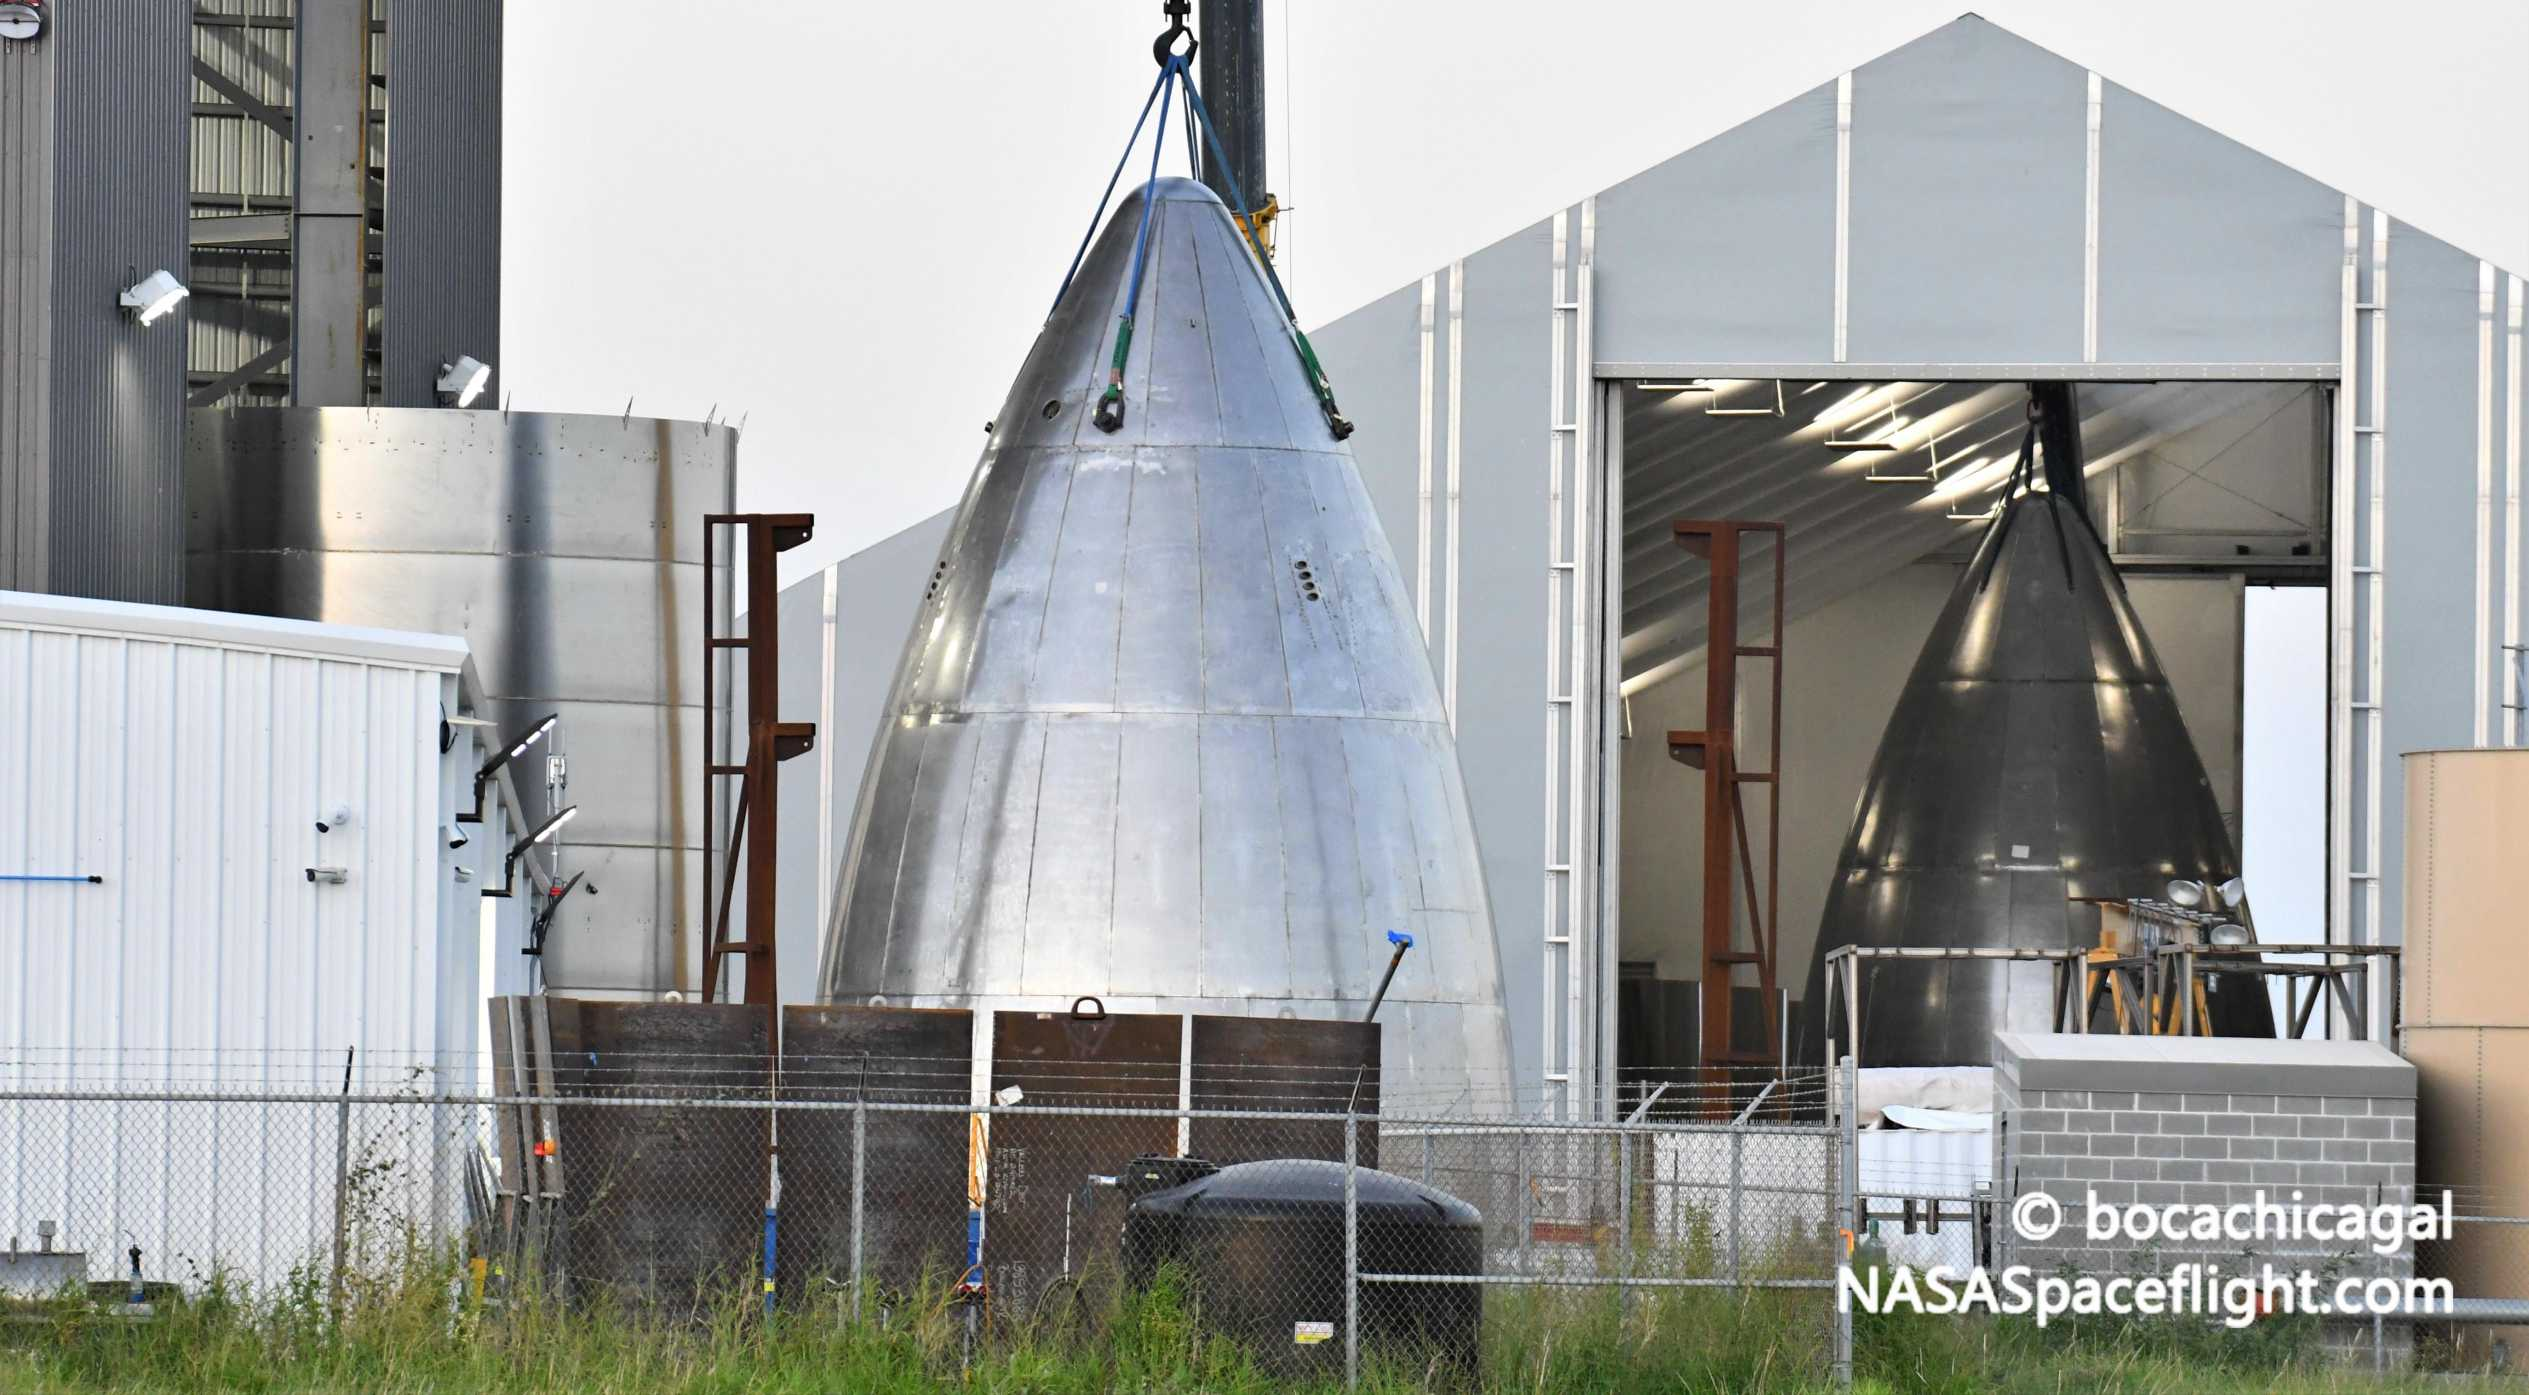 Starship Boca Chica 071420 (NASASpaceflight – bocachicagal) nose stack 1 crop (c)